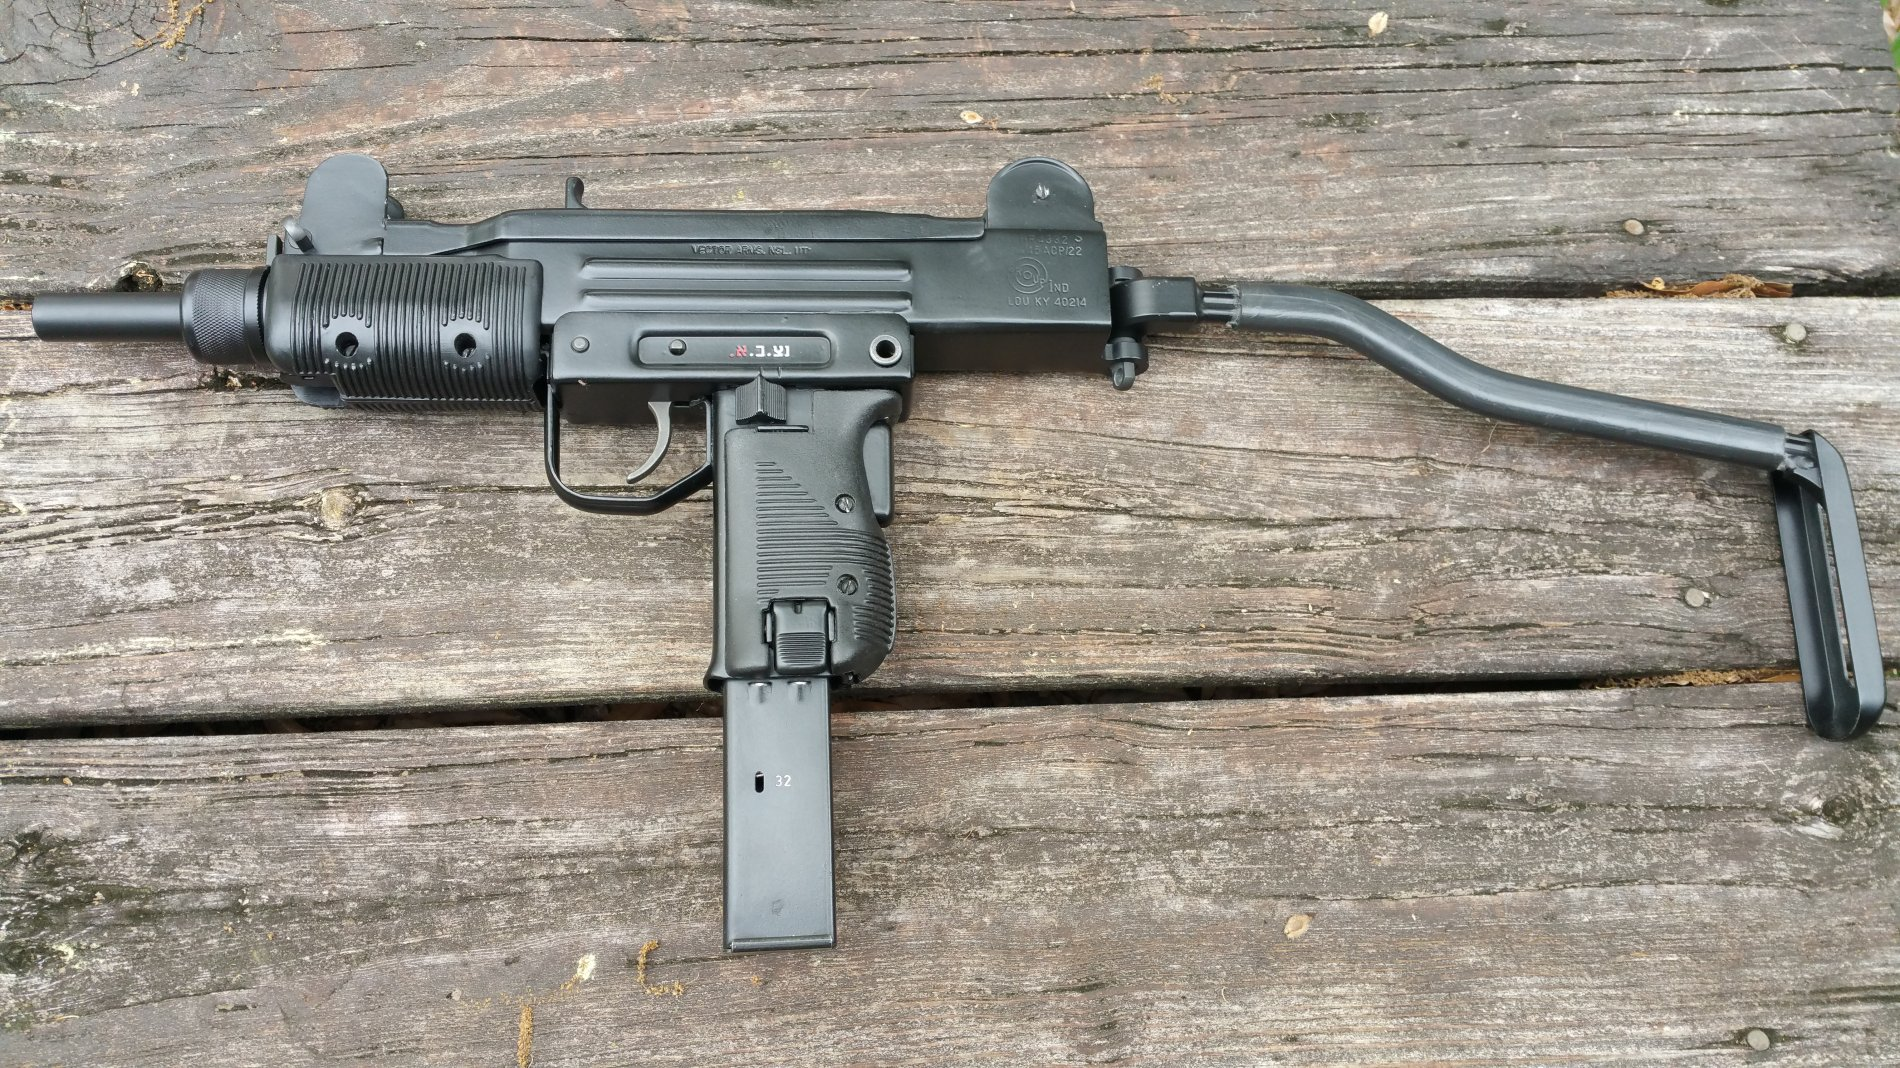 Brief review on the IWI Uzi Pro